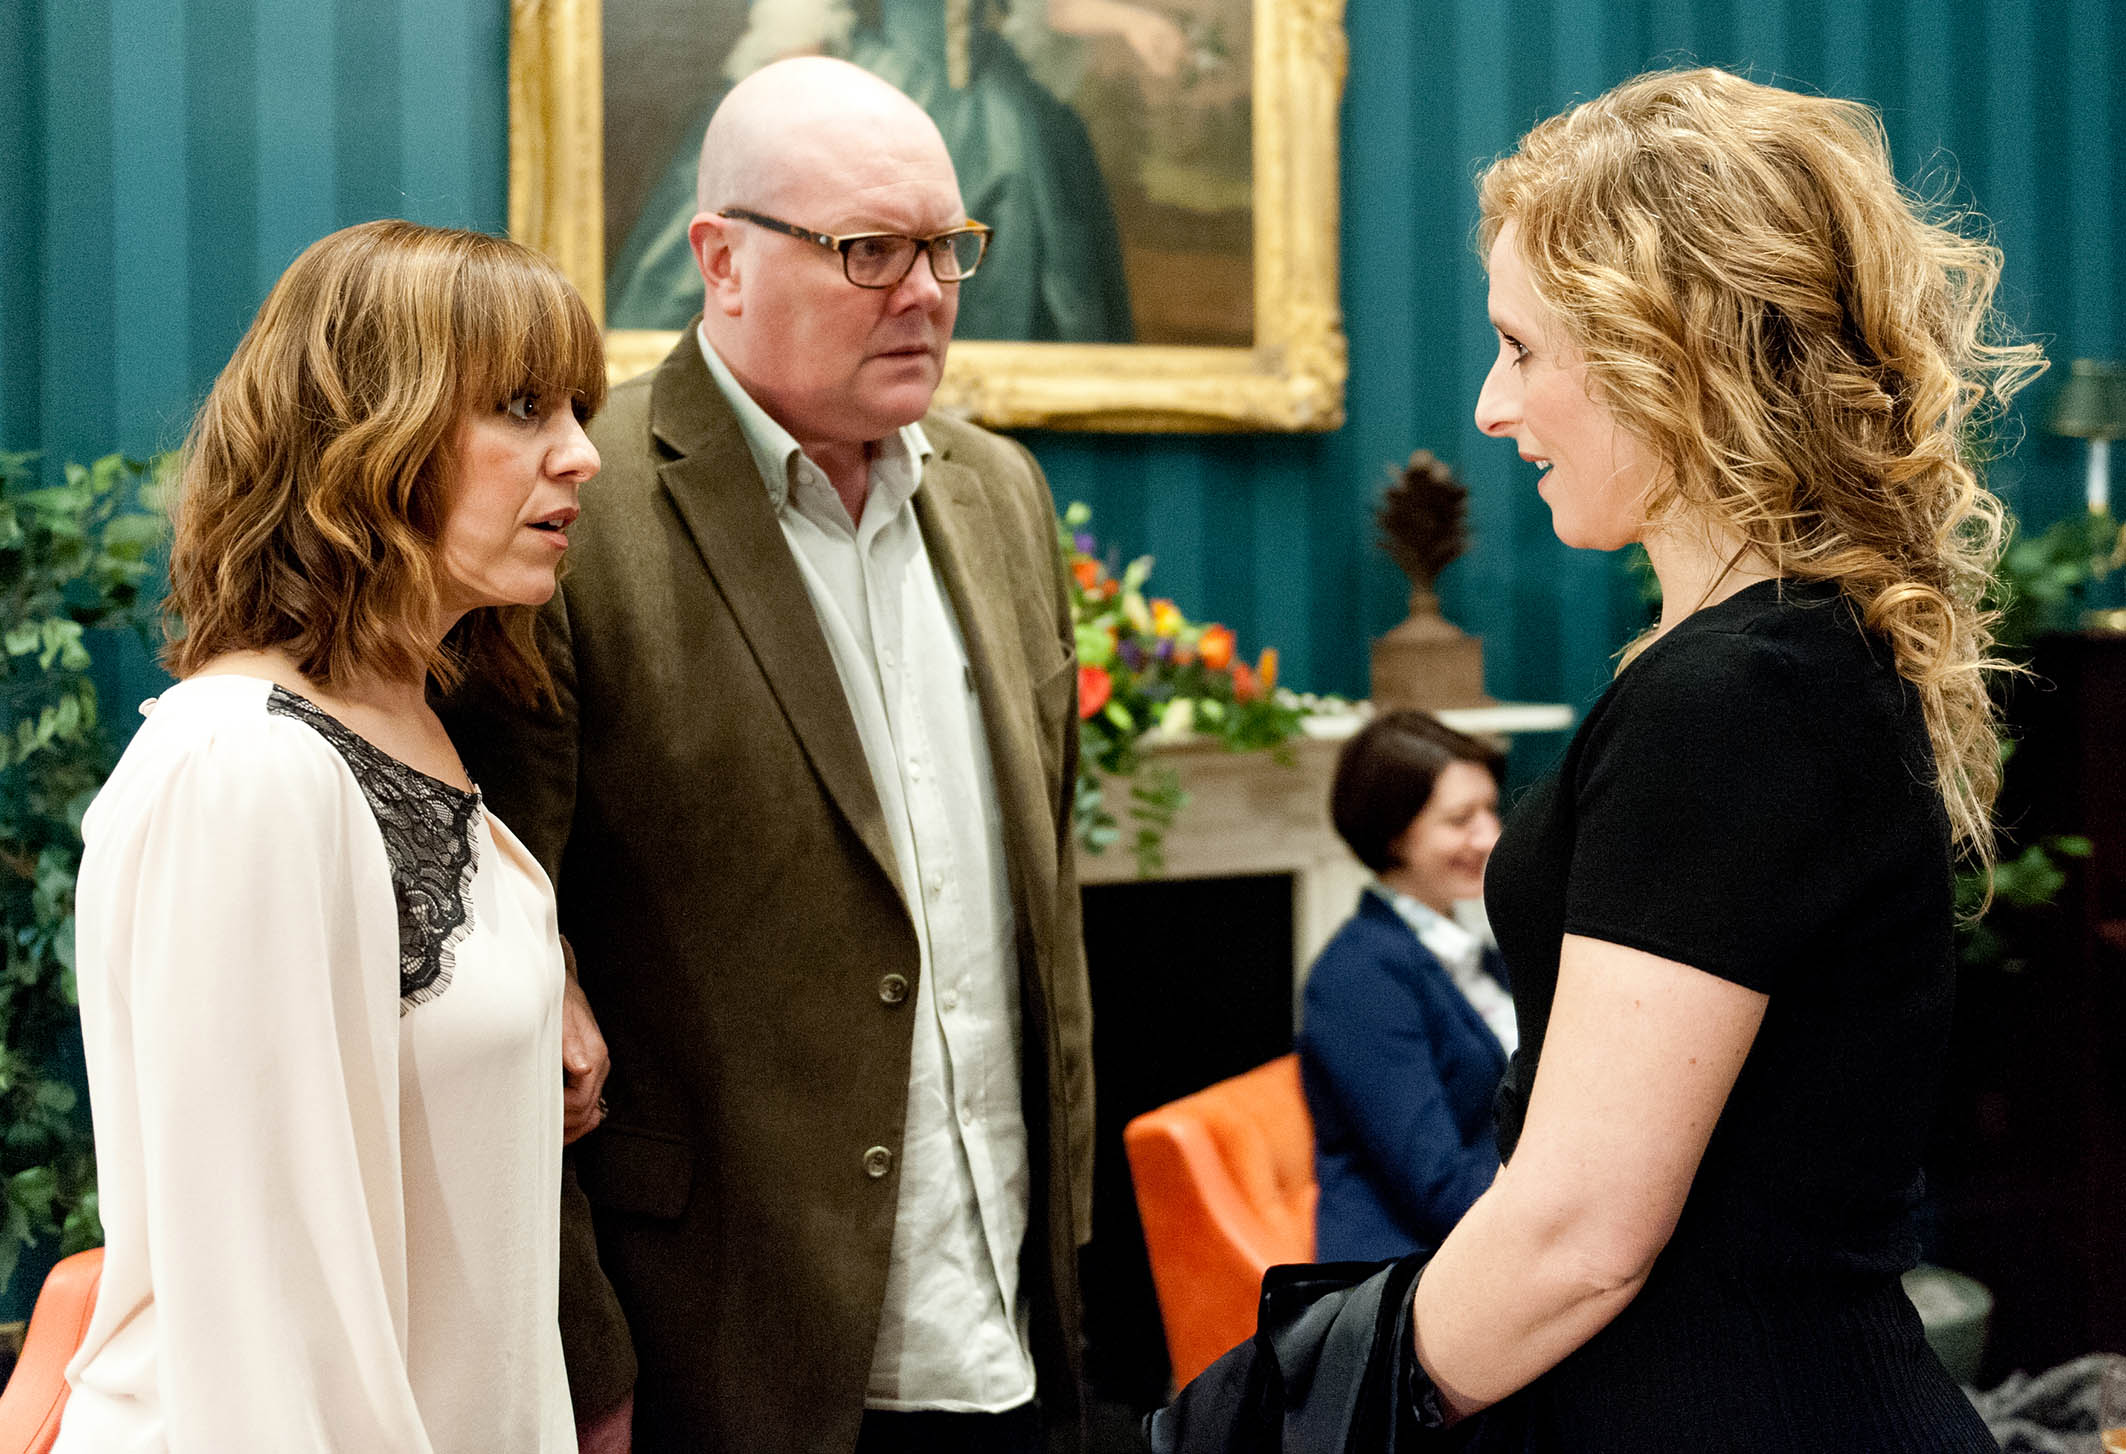 FROM ITV STRICT EMBARGO - Tuesday 19 January 2016 Emmerdale - Ep 7411 Thursday 28 January 2016 - 2nd Ep Paddy Kirk [DOMINIC BRUNT] is horrified when Rhona Goskirk [ZOE HENRY] spots Tess Harris [NICOLA STEPHENSON] and calls her over. Tess lies she's there with Pierce and accepts as Rhona invites her to have champagne, much to Paddy's horror. Tess plays Paddy and he's sure she's going to reveal their affair, woman scorned. Picture contact: david.crook@itv.com on 0161 952 6214 Photographer - Andrew Boyce This photograph is (C) ITV Plc and can only be reproduced for editorial purposes directly in connection with the programme or event mentioned above, or ITV plc. Once made available by ITV plc Picture Desk, this photograph can be reproduced once only up until the transmission [TX] date and no reproduction fee will be charged. Any subsequent usage may incur a fee. This photograph must not be manipulated [excluding basic cropping] in a manner which alters the visual appearance of the person photographed deemed detrimental or inappropriate by ITV plc Picture Desk. This photograph must not be syndicated to any other company, publication or website, or permanently archived, without the express written permission of ITV Plc Picture Desk. Full Terms and conditions are available on the website www.itvpictures.com